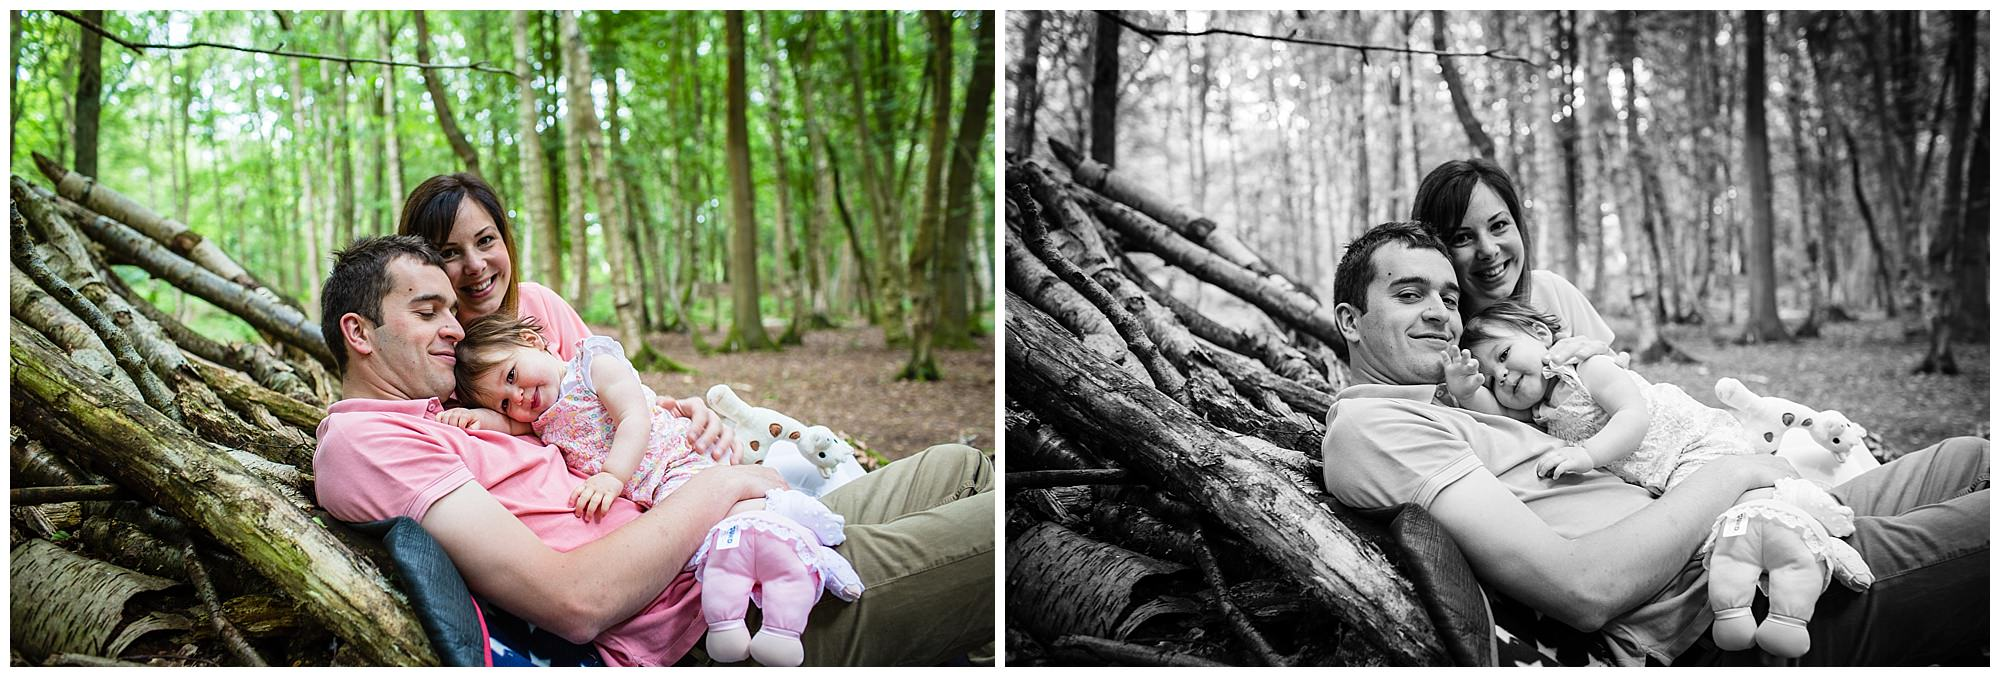 family of three sat against a tree house having a natural moment - charlotte giddings photography